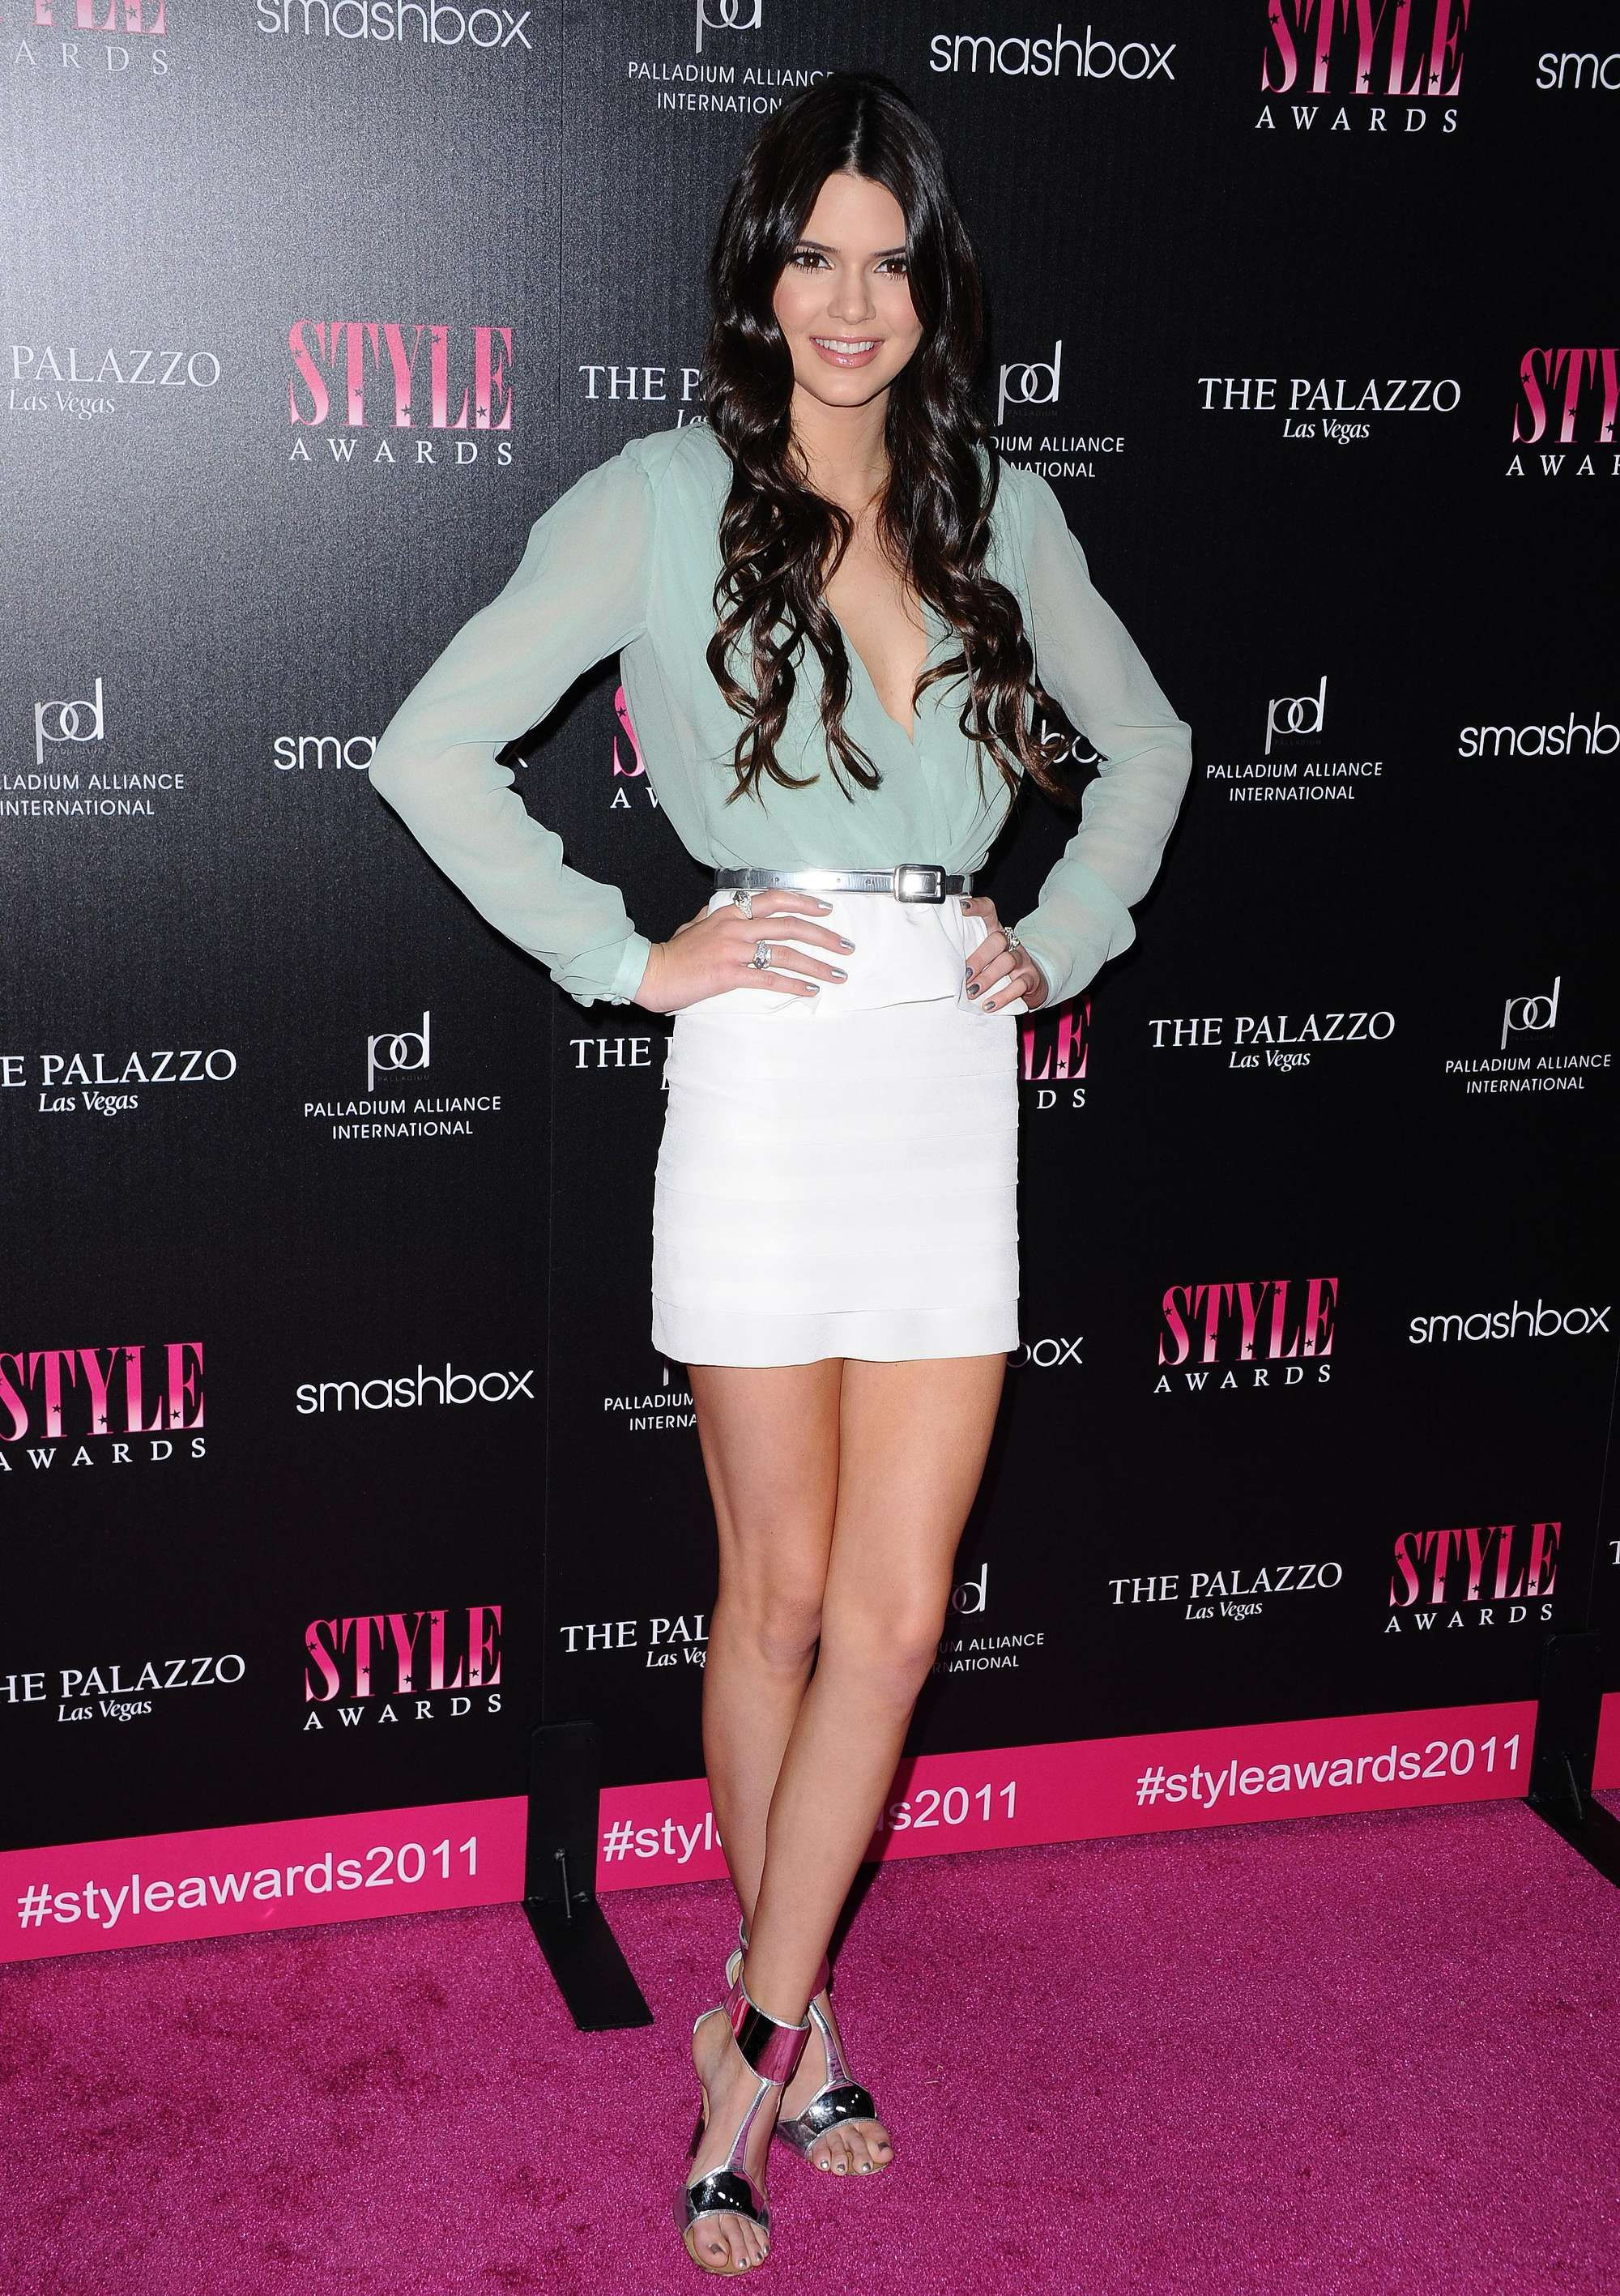 Kendall in style awards kendall nicole jenner pinterest models